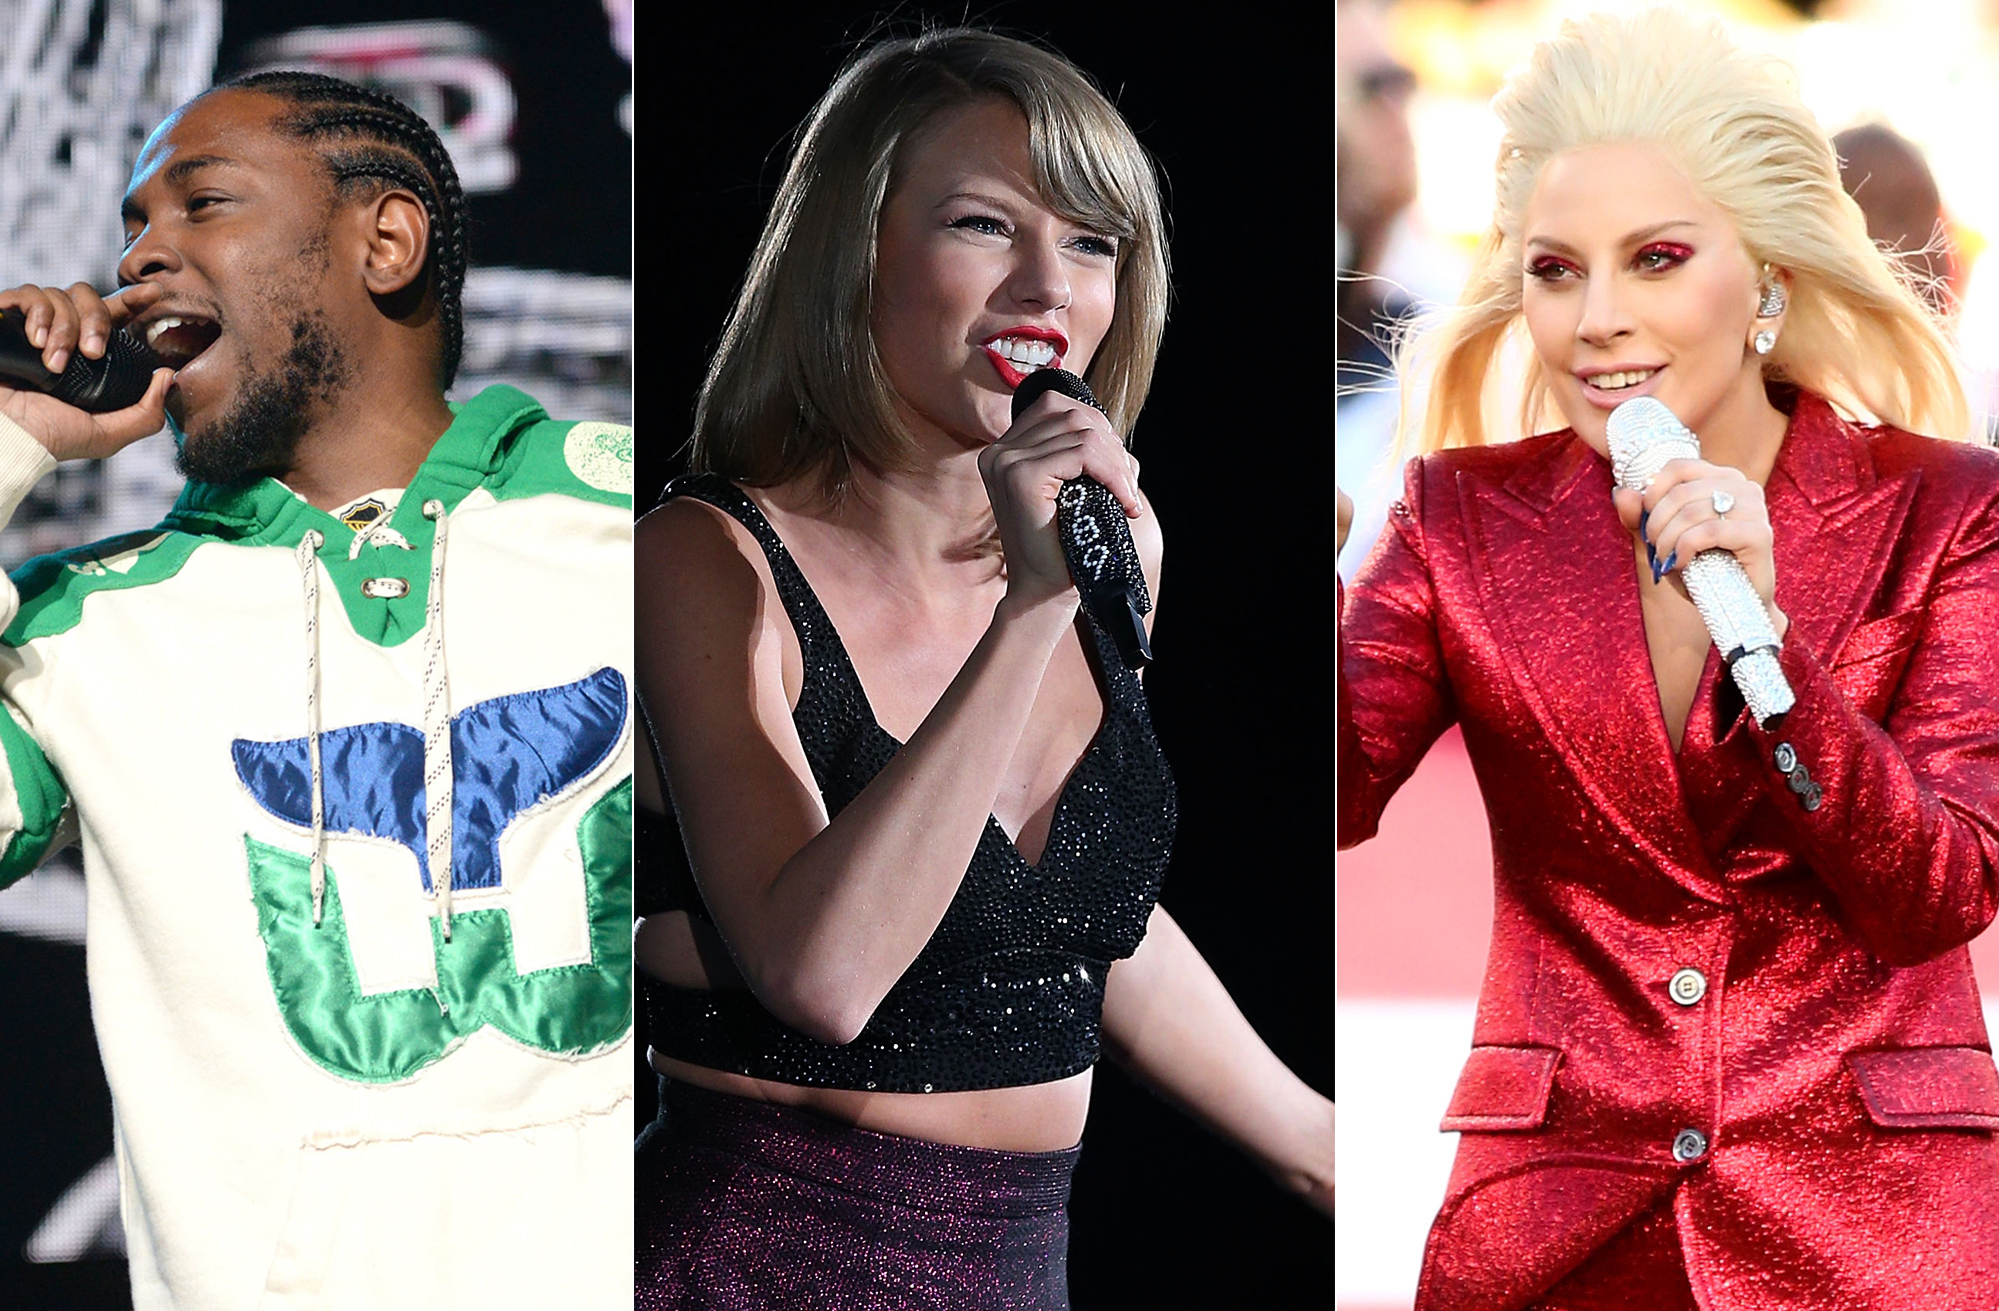 From left: Kendrick Lamar, Taylor Swift, Lady Gaga.